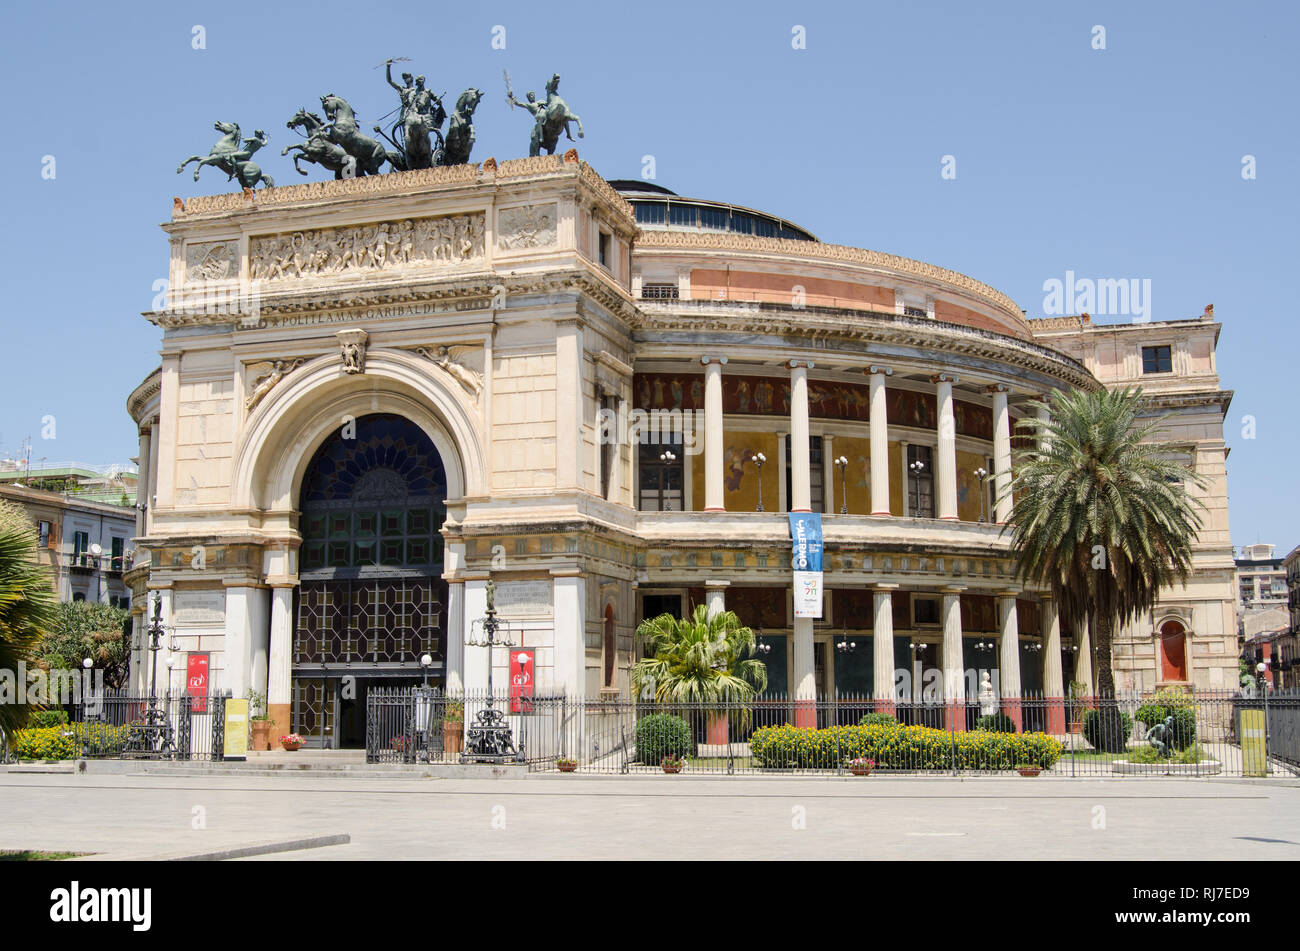 The landmark Teatro Politeama in Palermo, Sicily.  Home to the Orchestra Sinfonica Siciliana, the multi purpose concert hall and theatre was built in  Stock Photo